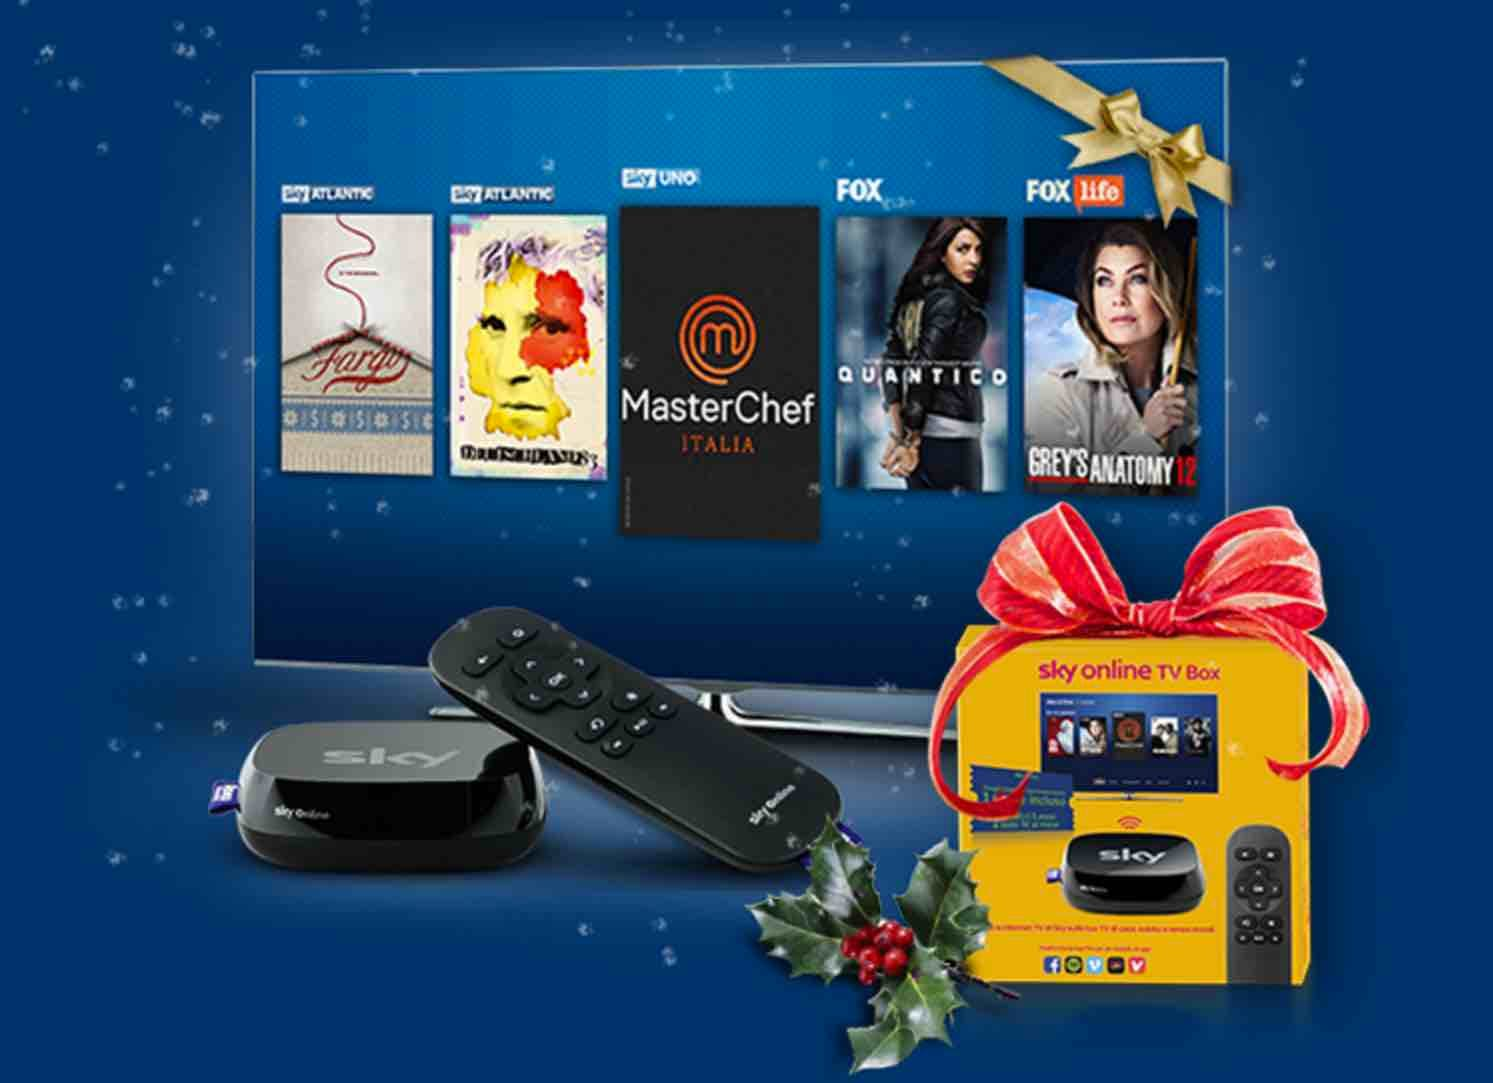 Sky Online TV Box Xmas Contest